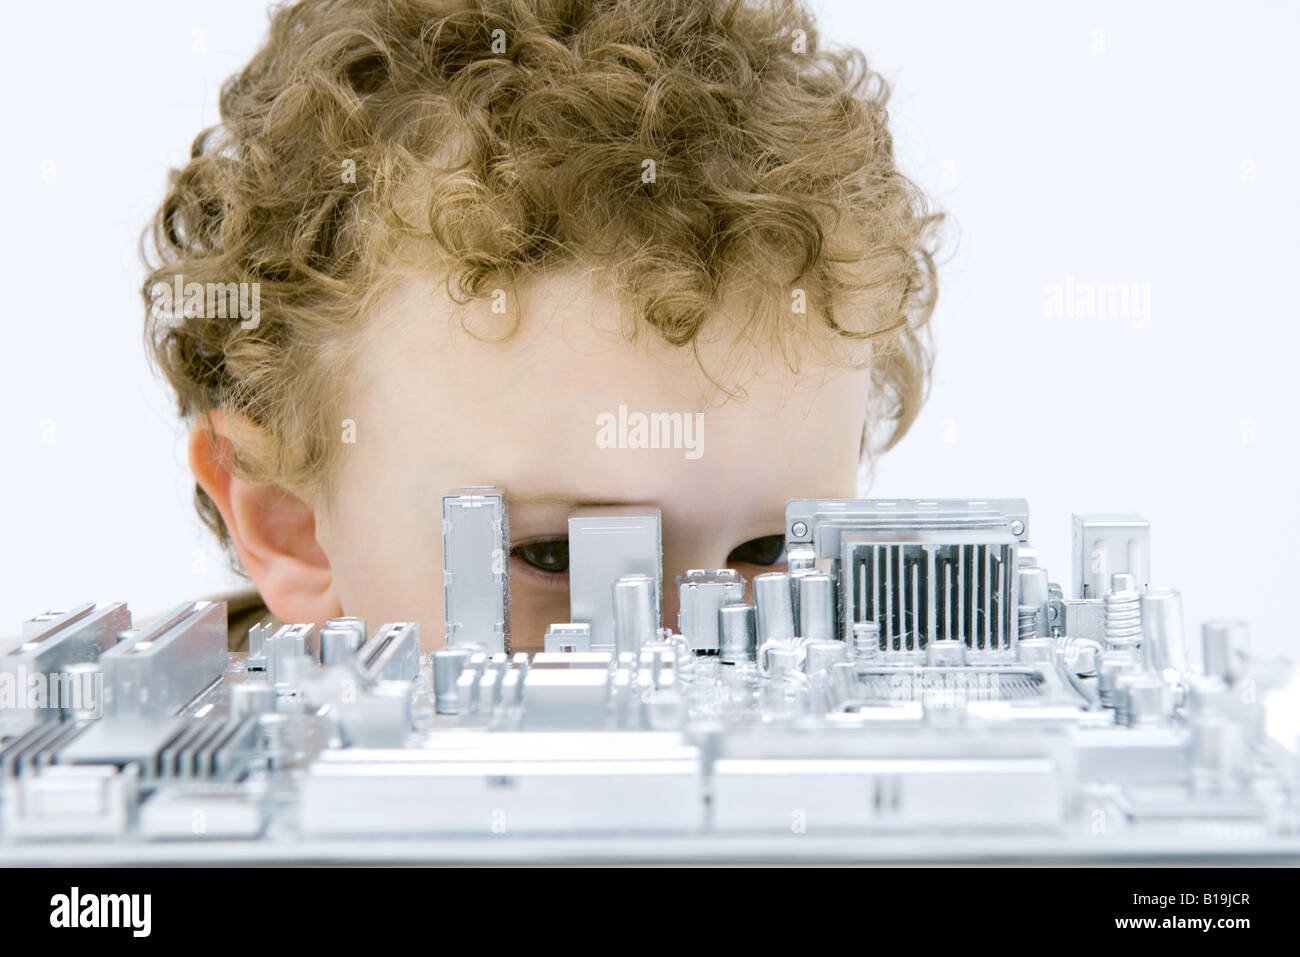 Curly haired boy hiding behind and looking through circuit board - Stock Image